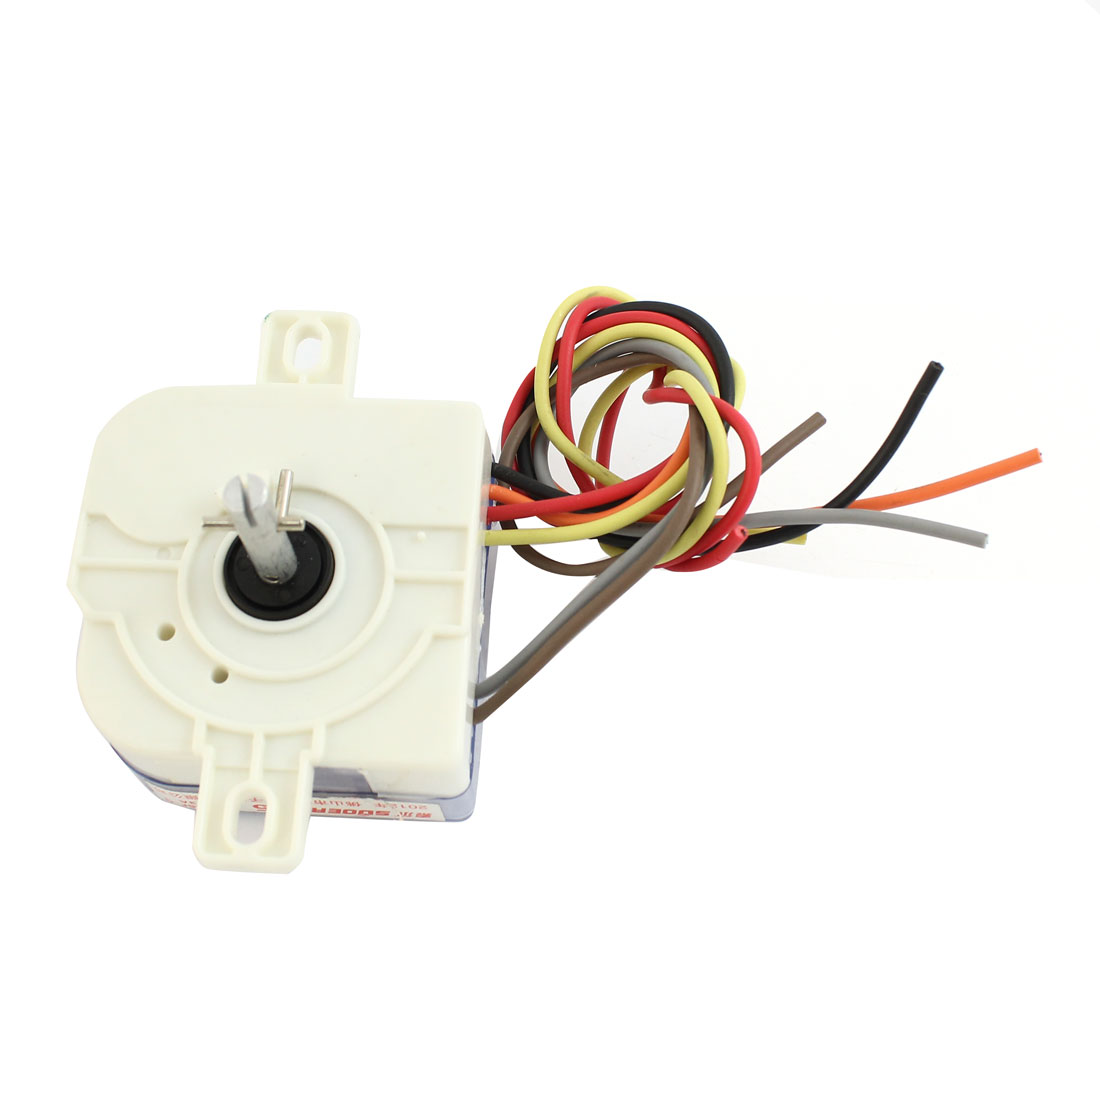 AC220V 3A 6 Wires Connector 90 Degree Rotary Shaft Washing Machine Timer White